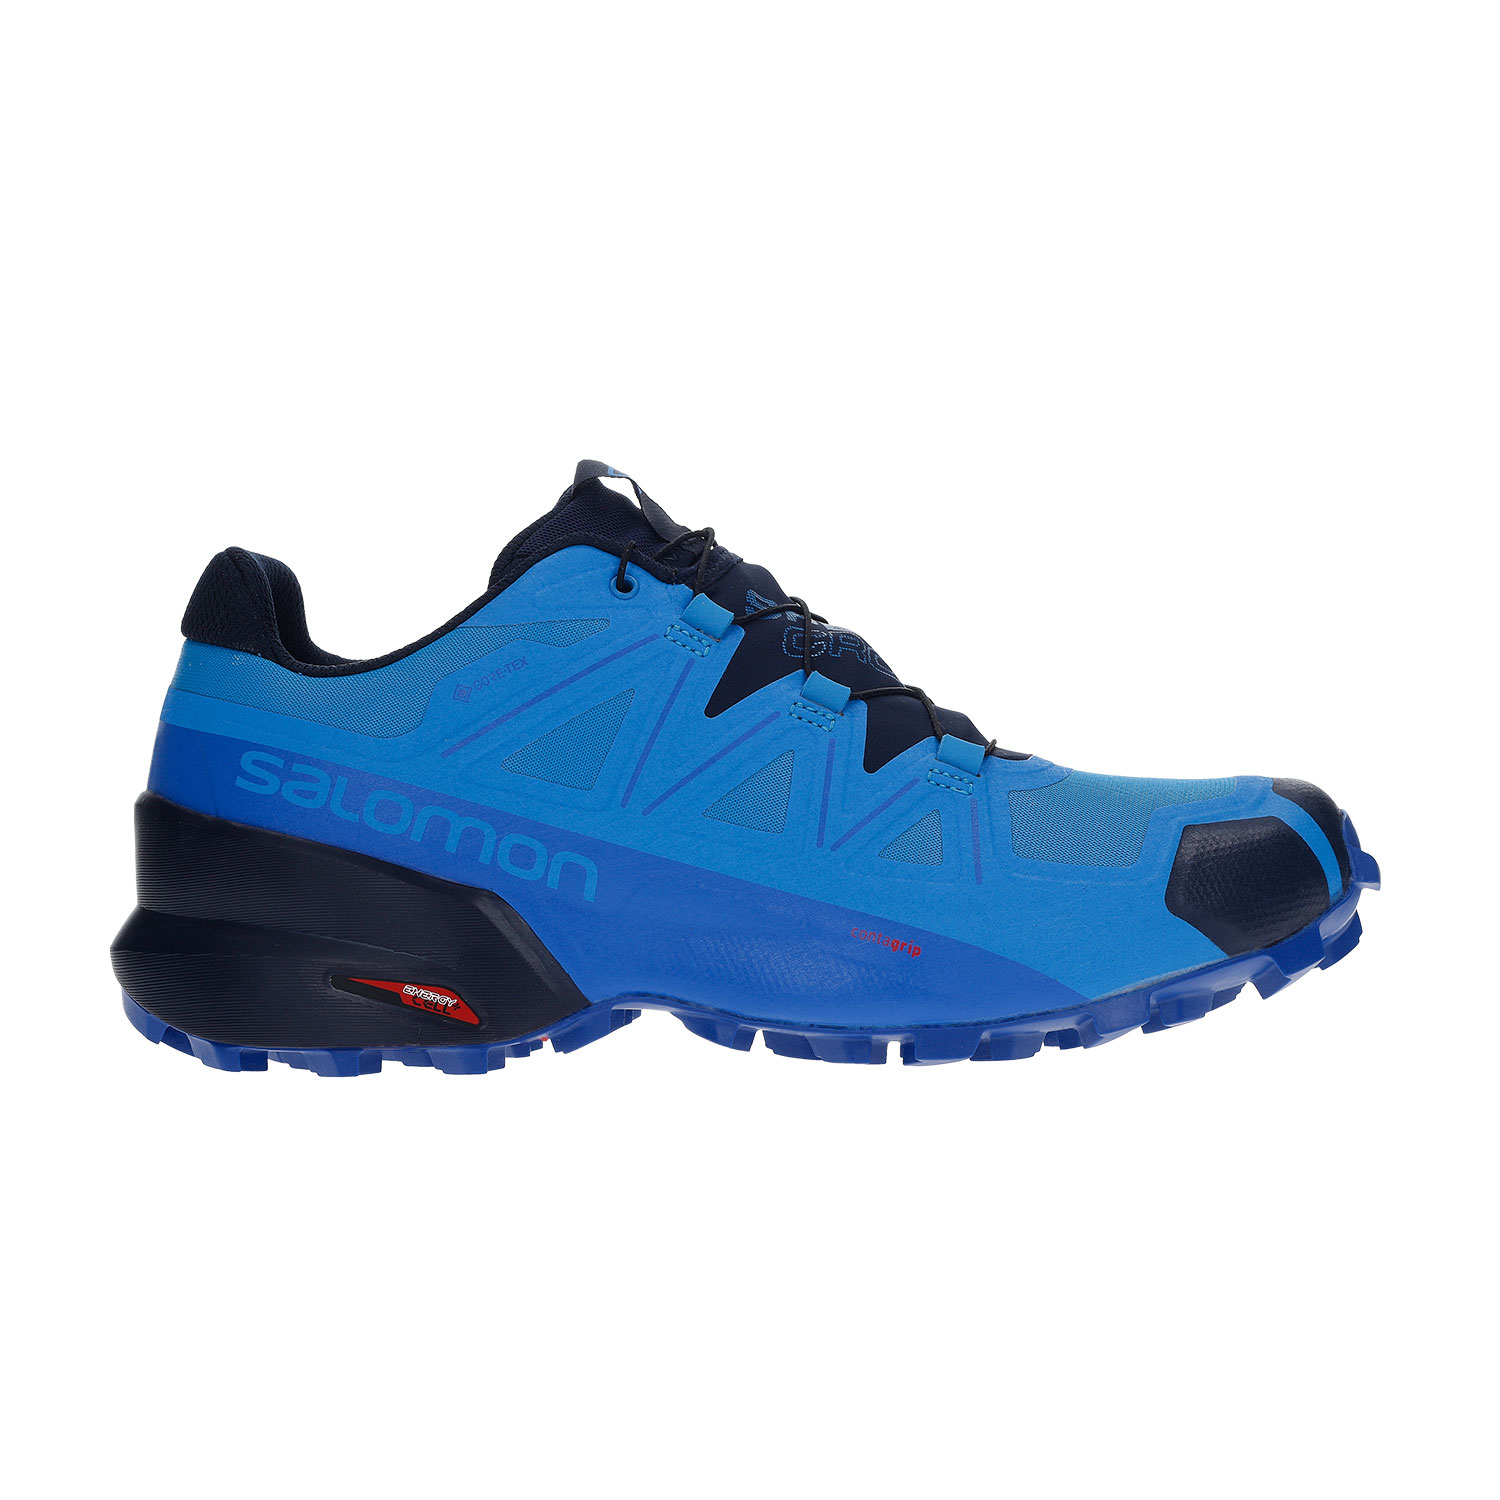 Salomon Speedcross 5 GTX - Blue Aster/Lapis Blue/Navy Blazer